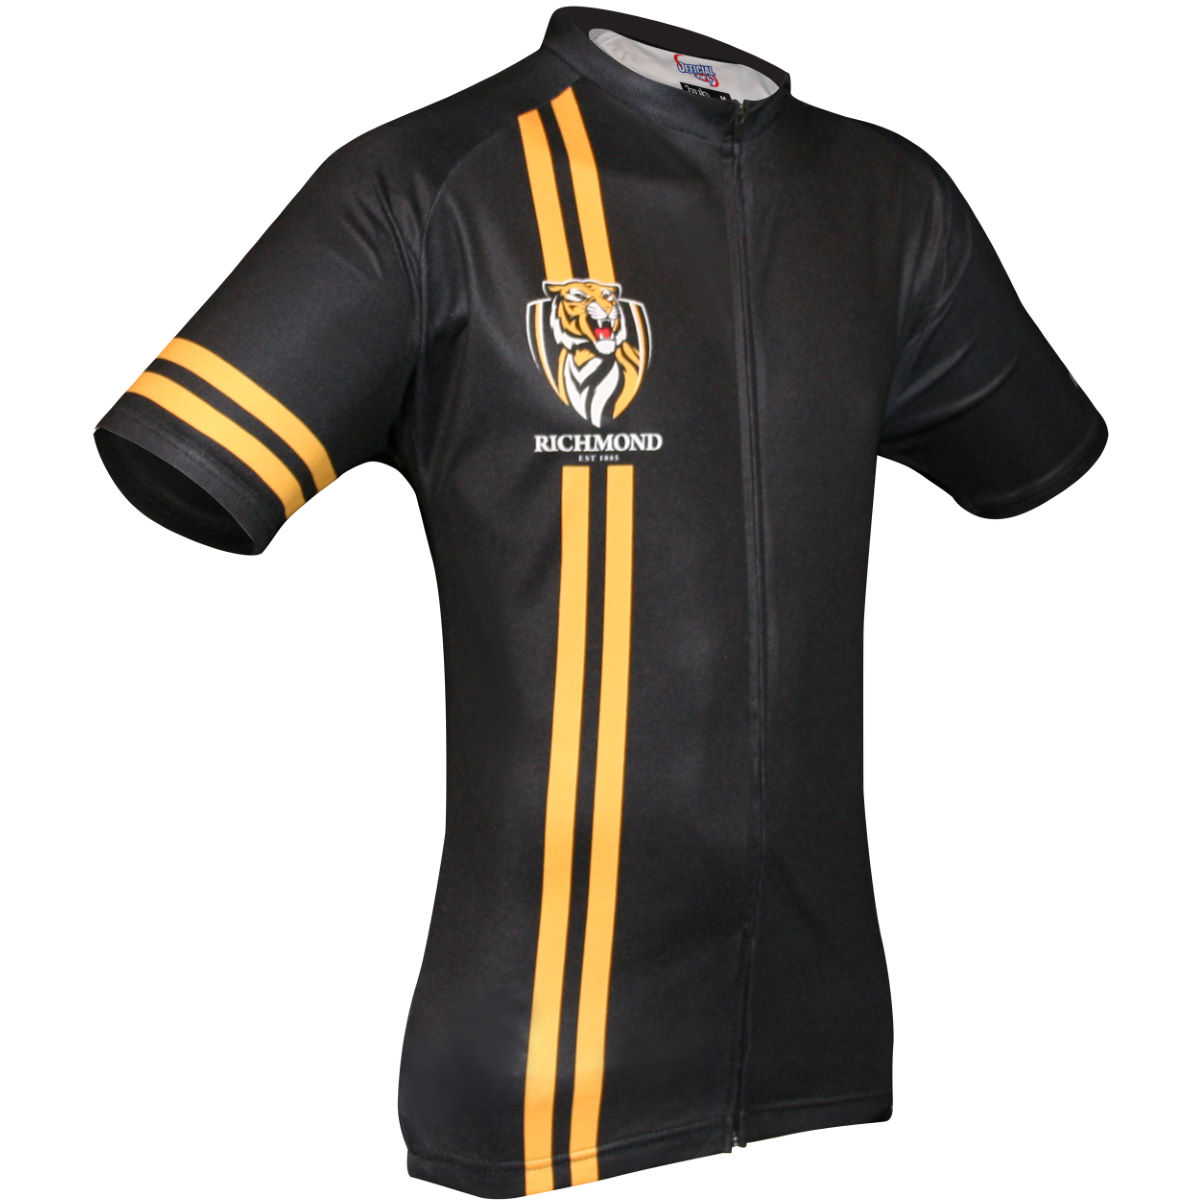 HUB Apparel AFL Licensed Cycling SS Jersey - Richmond